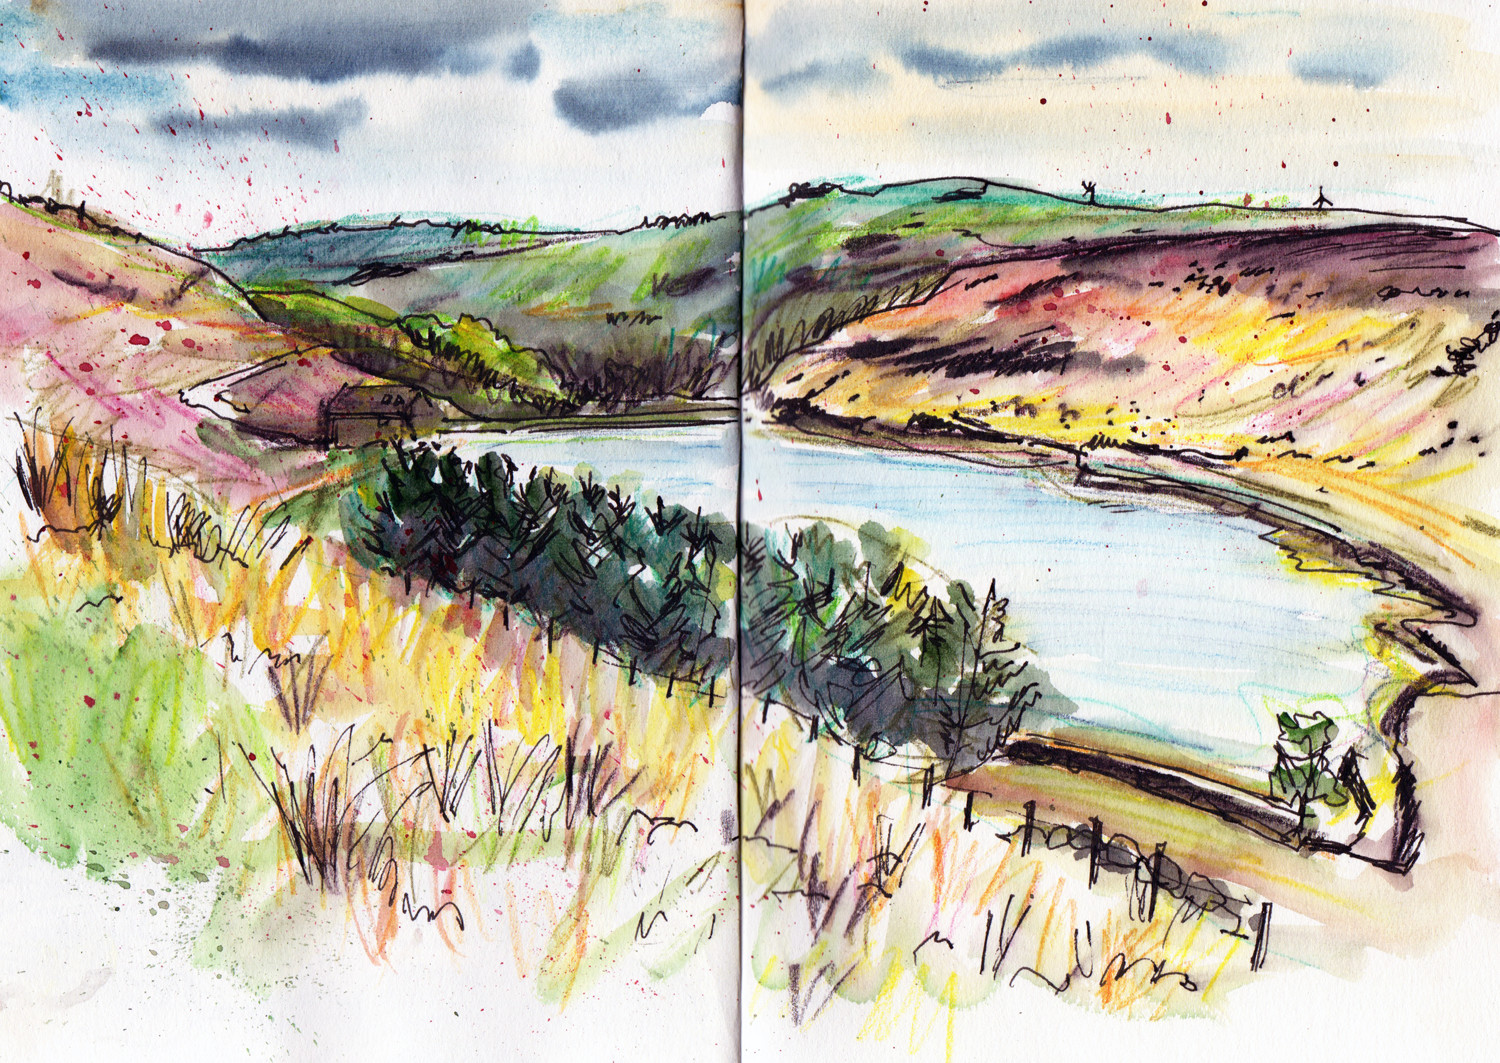 Withens Cloth reservoir Calderdale - Quick Landscape Sketches by Sophie Peanut